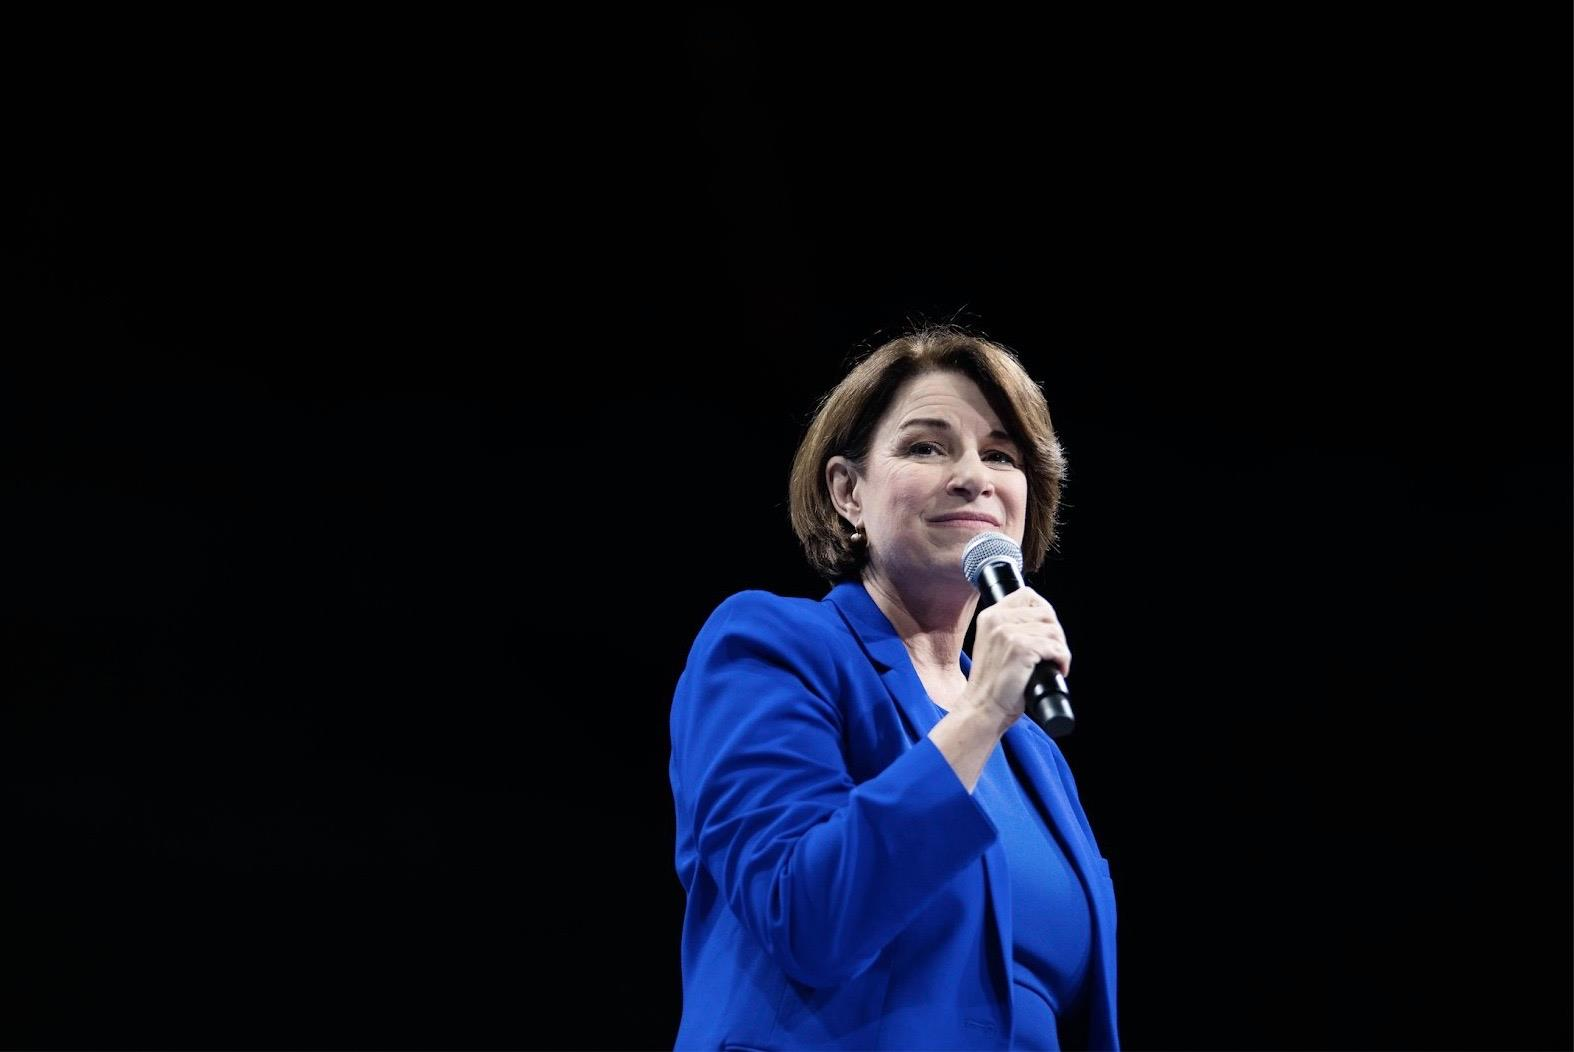 amy klobuchar wearing a blue suit standing against a black backdrop, holding a microphone and speaking